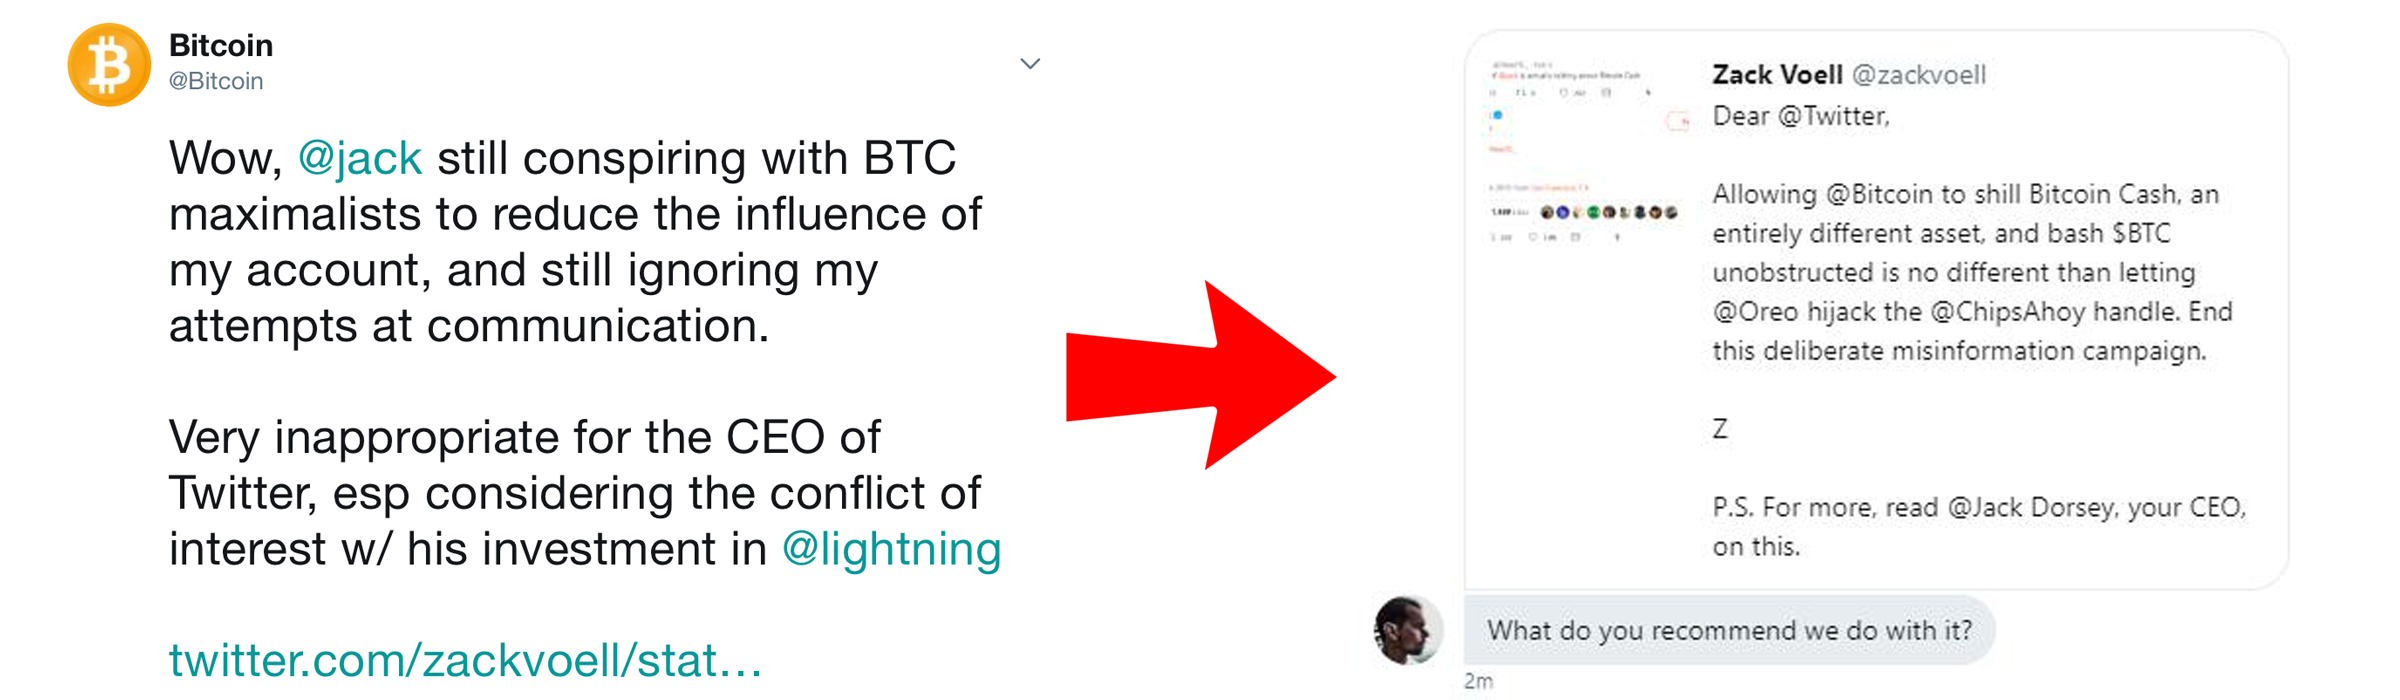 Attempts to Deplatform @Bitcoin Account Reveal Private Message With Twitter CEO